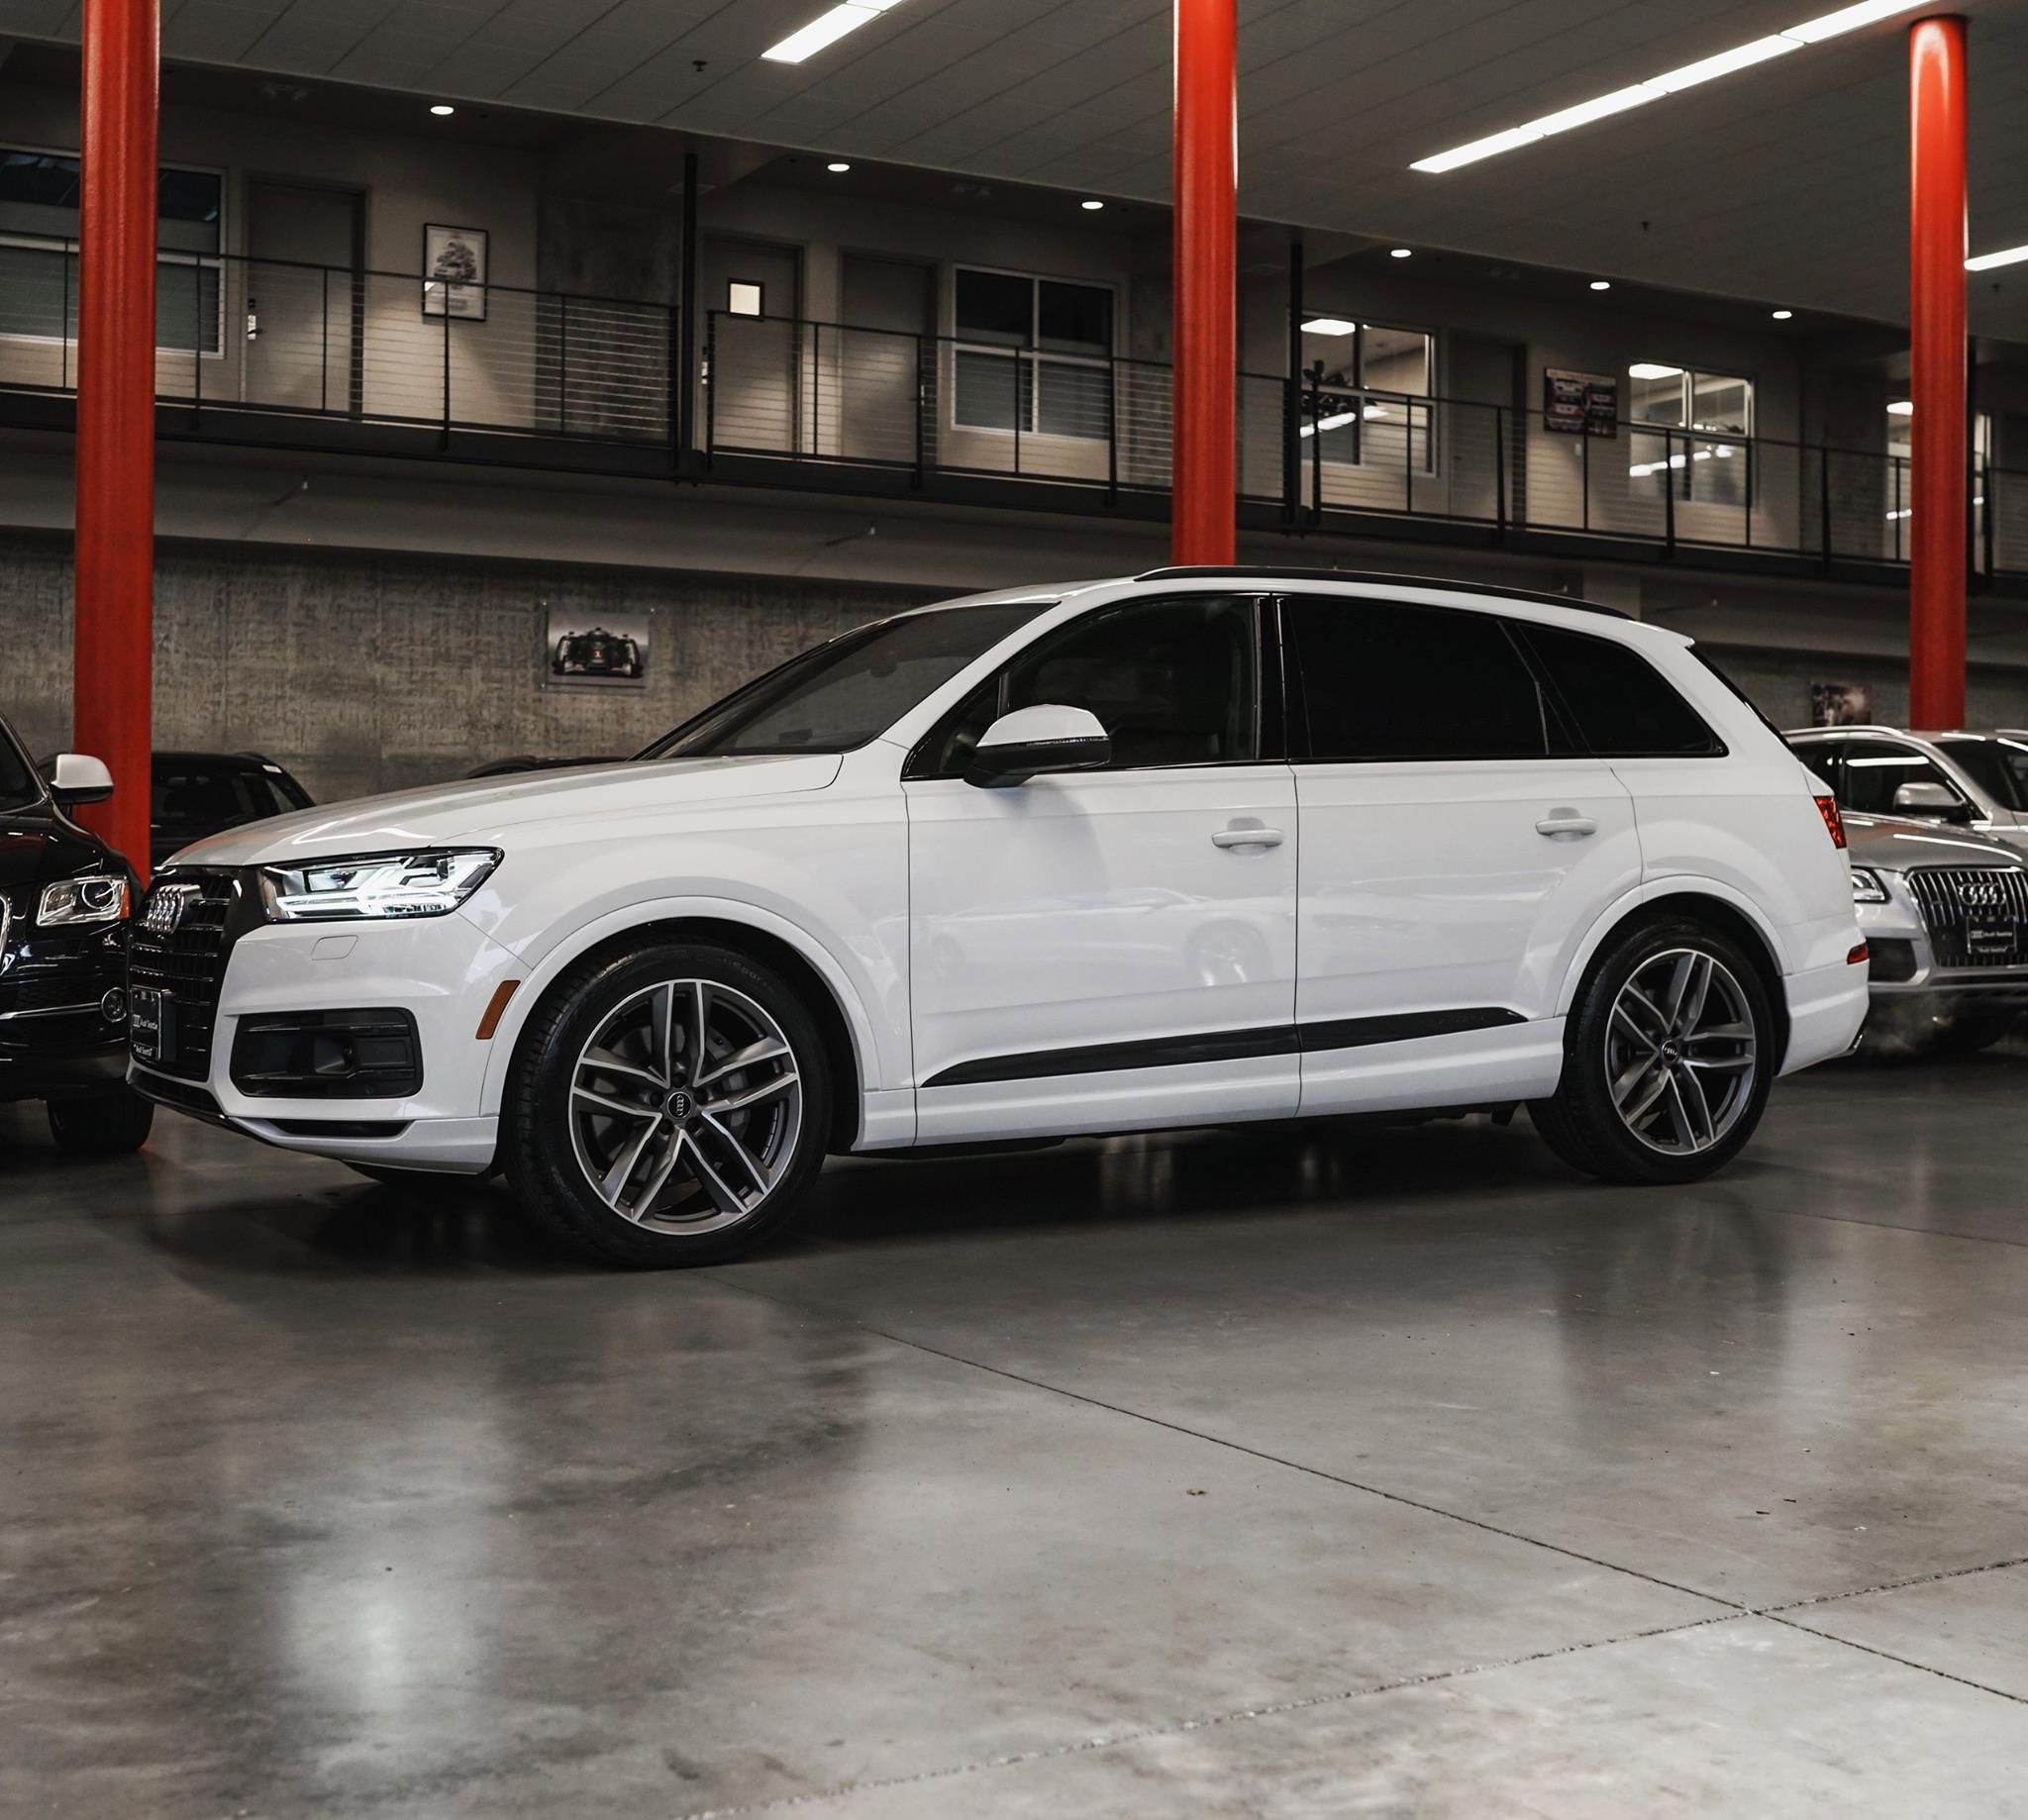 Glacier White Q7 With Black Optics